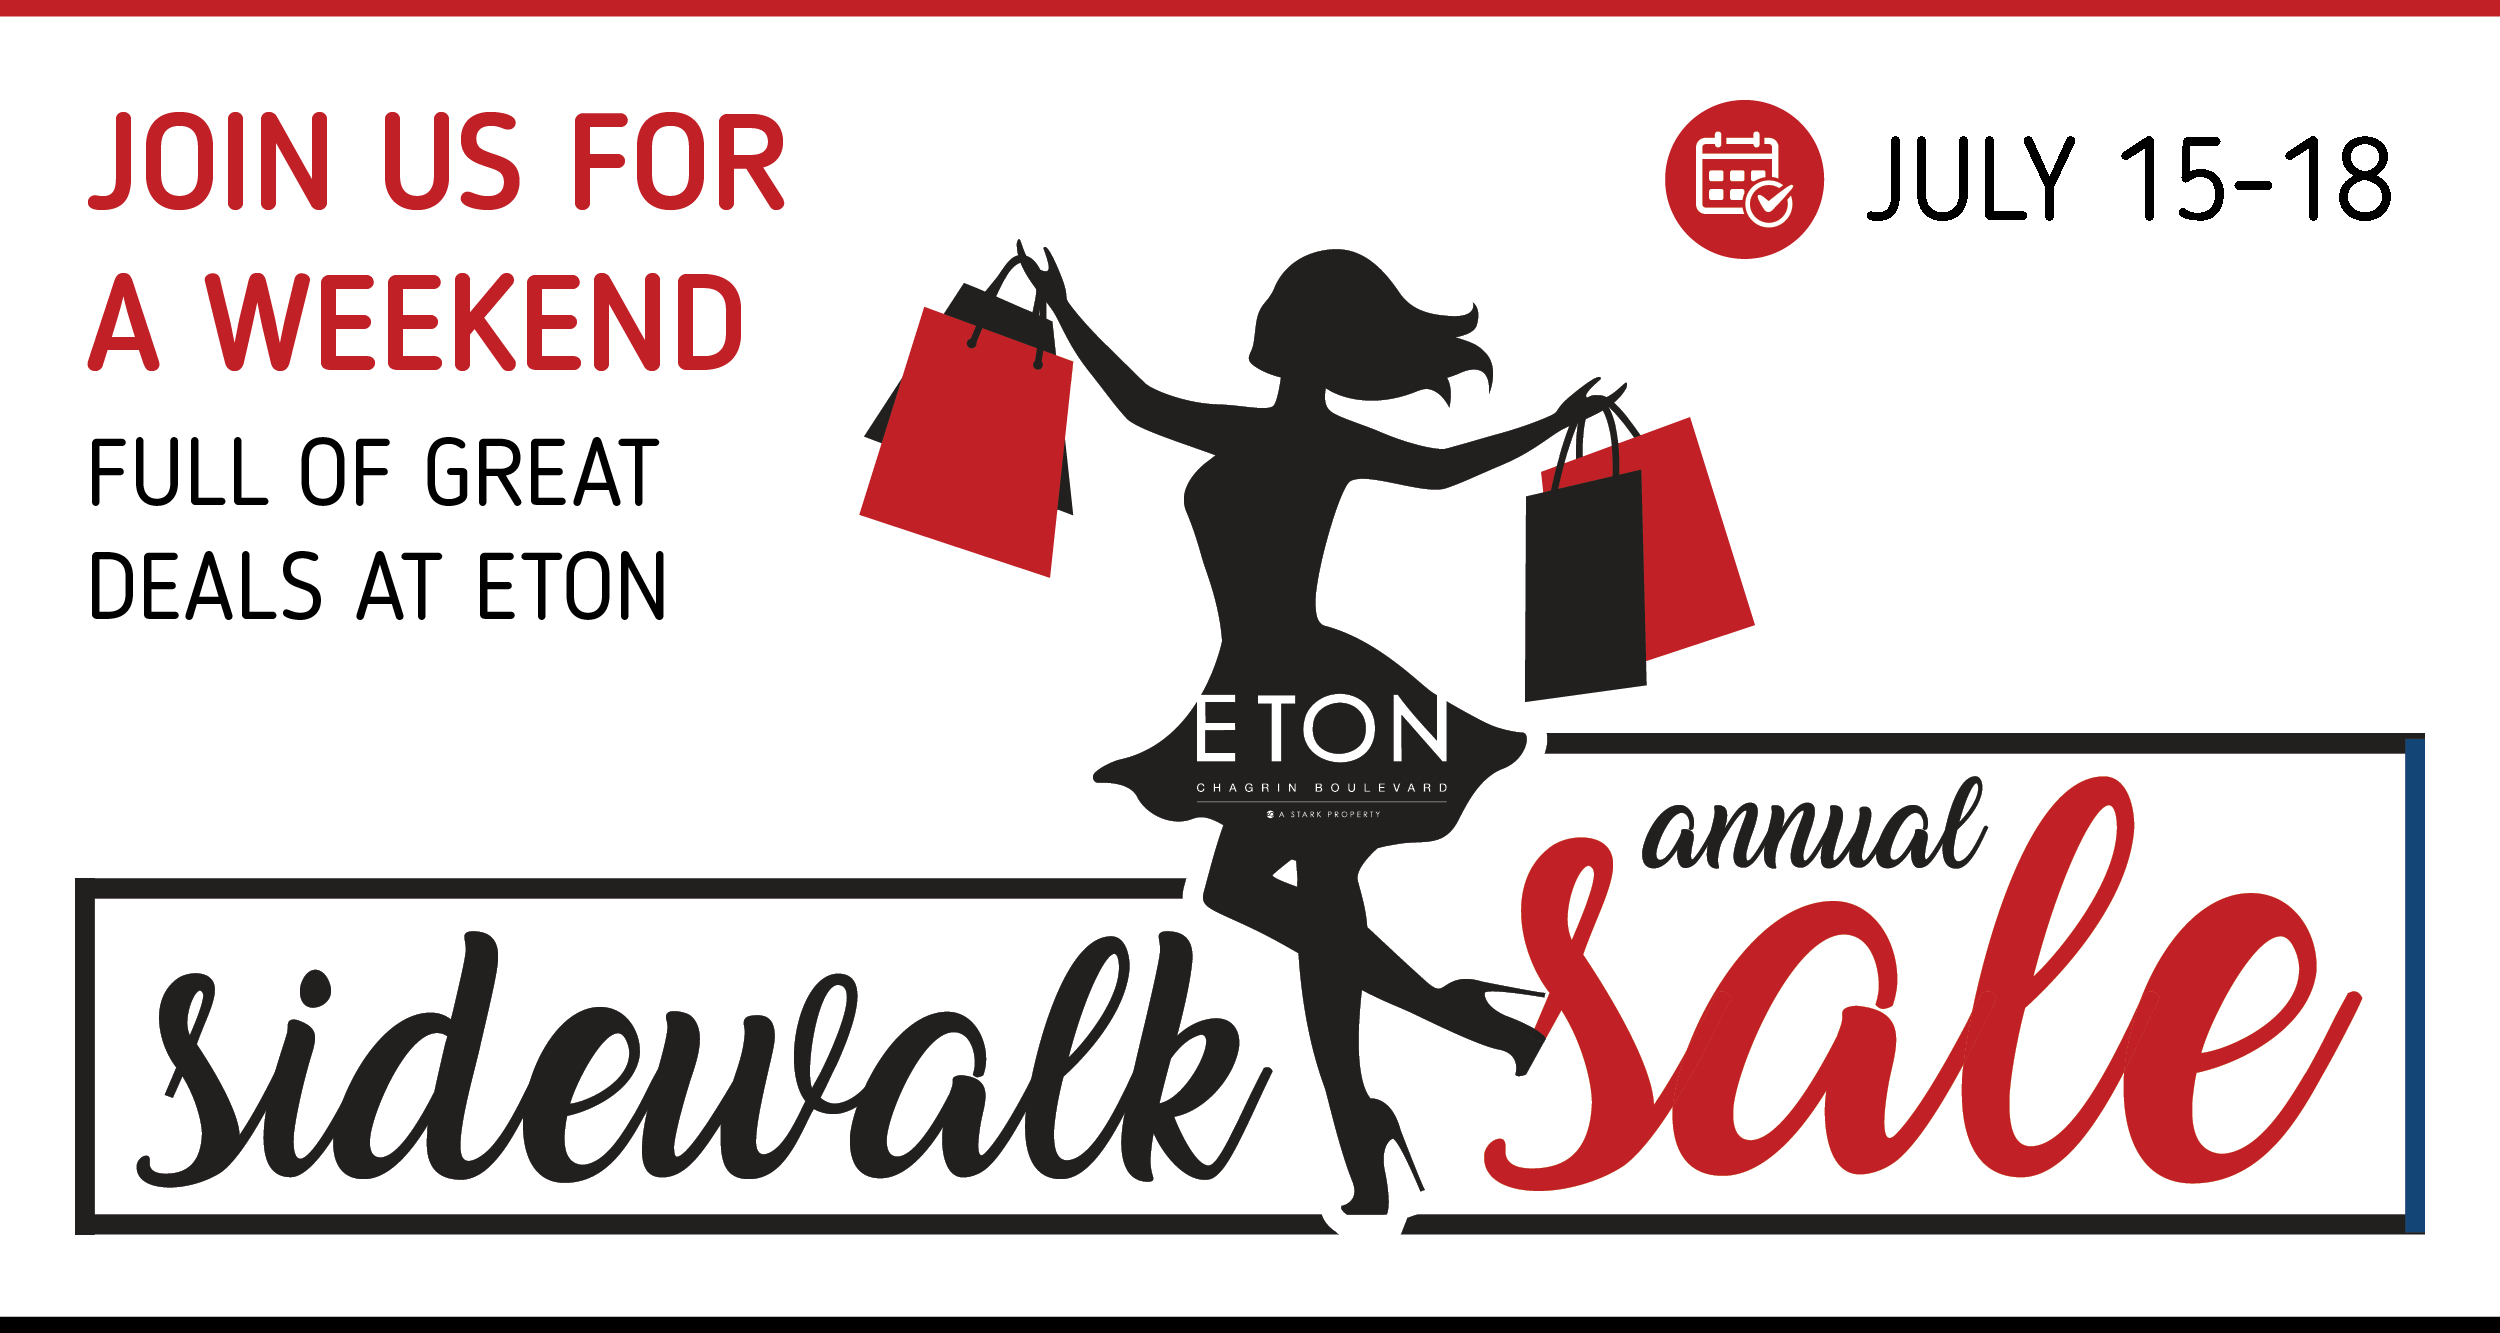 Summer Sidewalk Sale